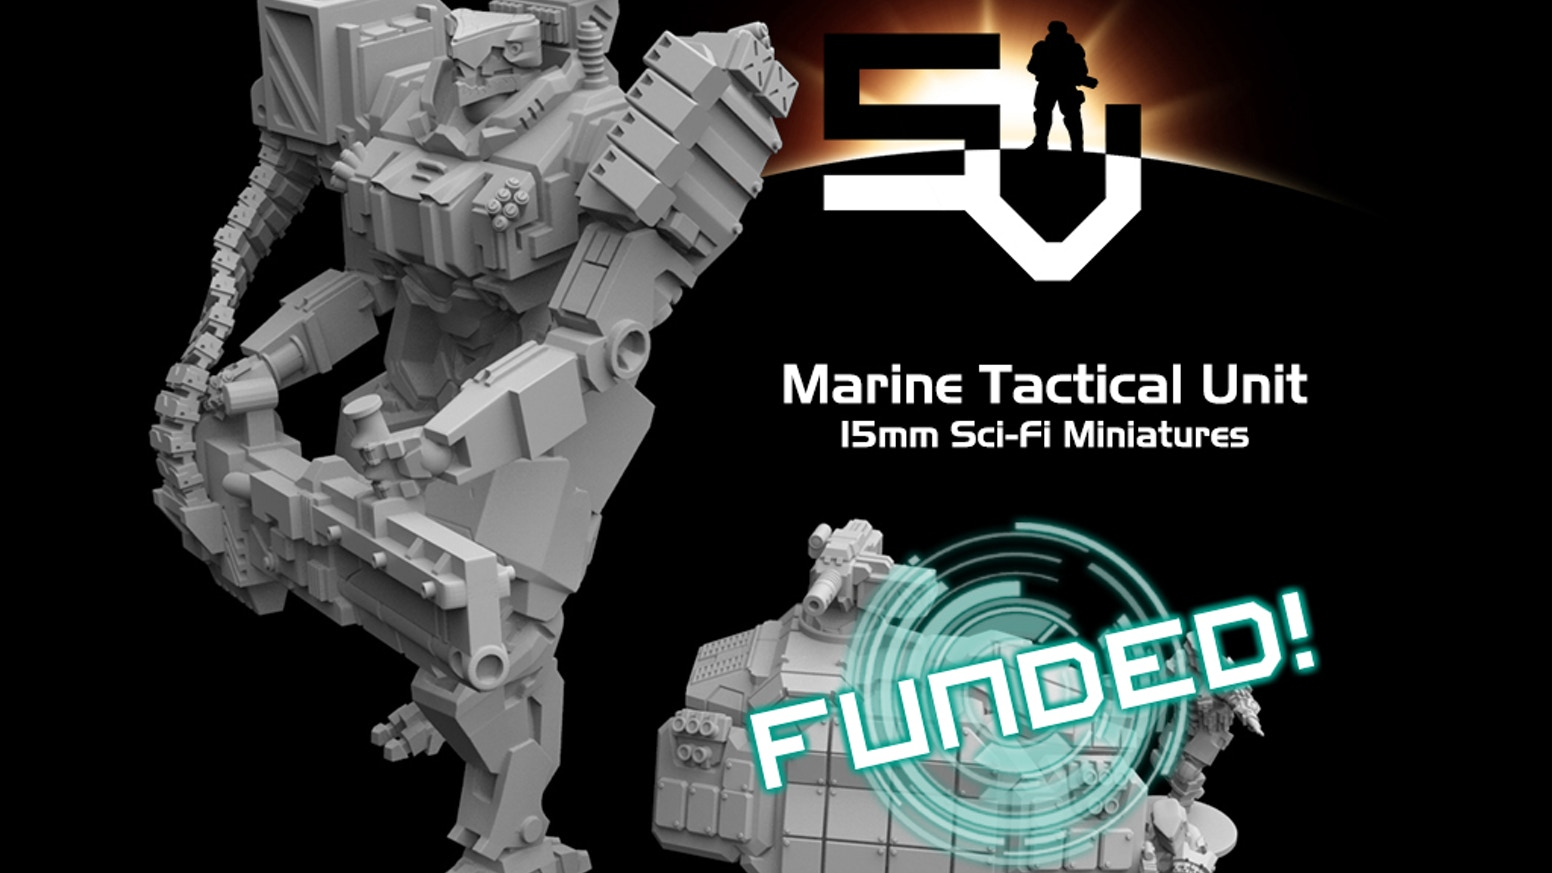 A range of highly detailed and realistic proportioned 15mm sci-fi miniatures from Marines to Mechs from the Shattered Void Universe. Now available in our online store!